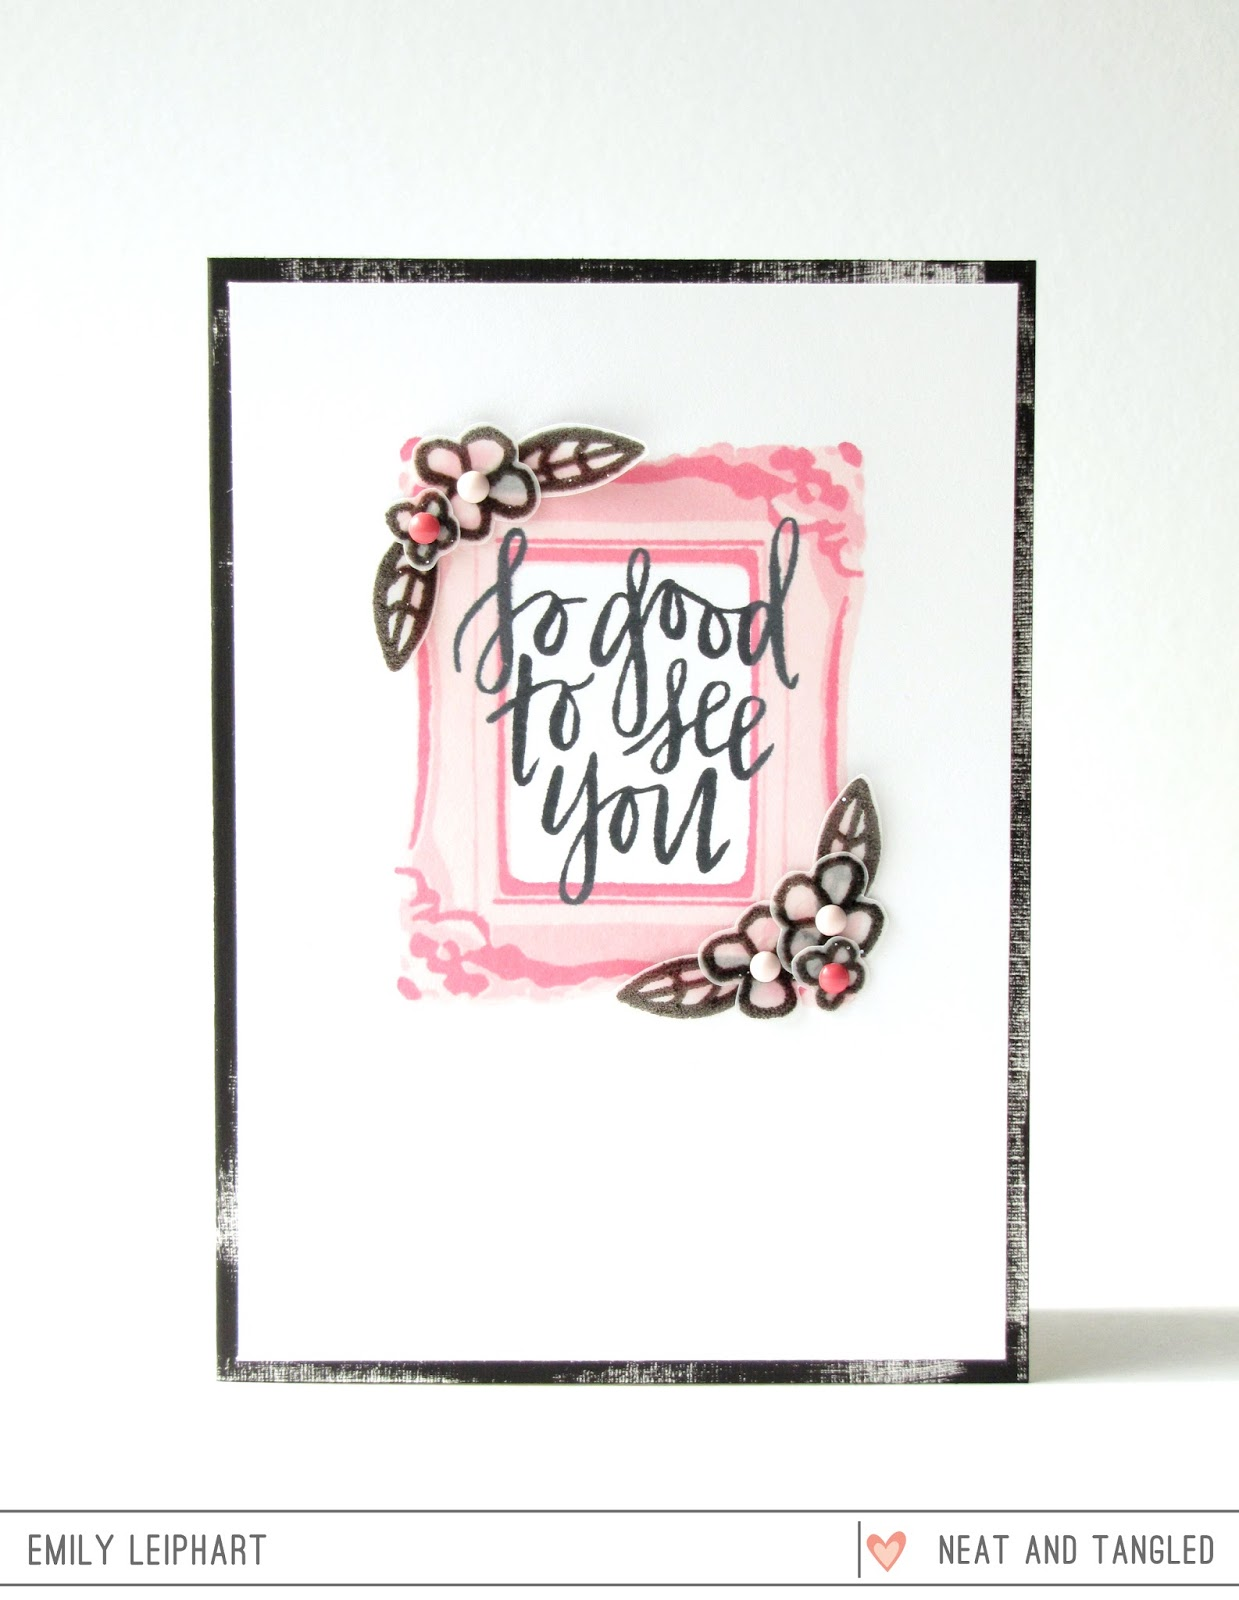 Art♥from♥the♥Heart: {Neat & Tangled} January Release Week: Day 2 ...